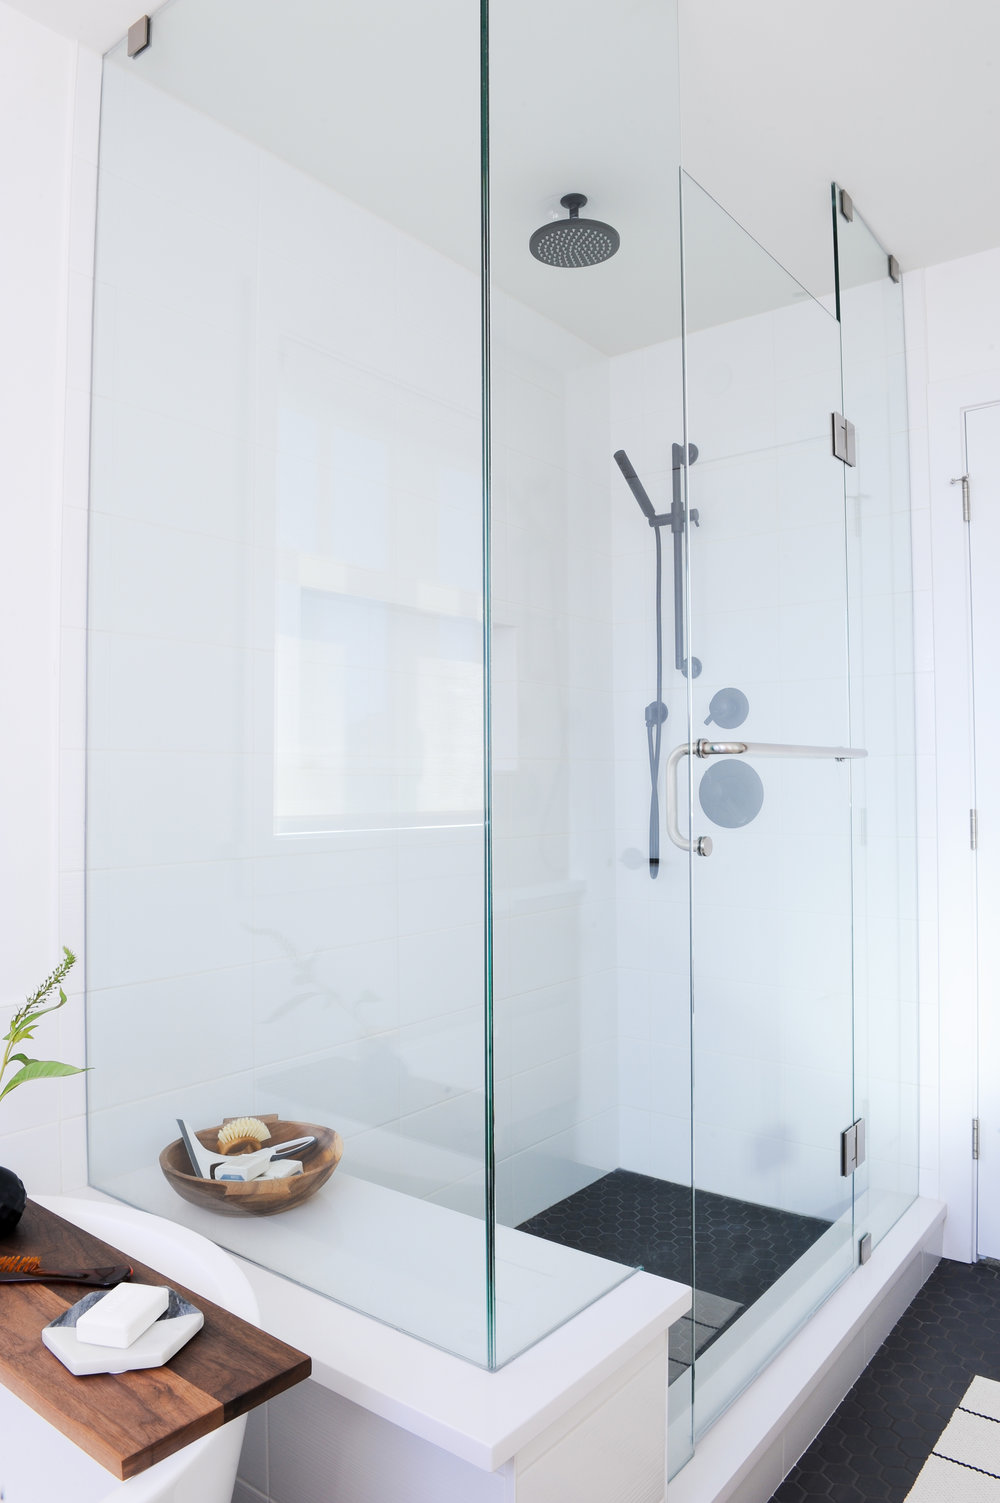 A stand up shower with rain shower attachment and glass walls